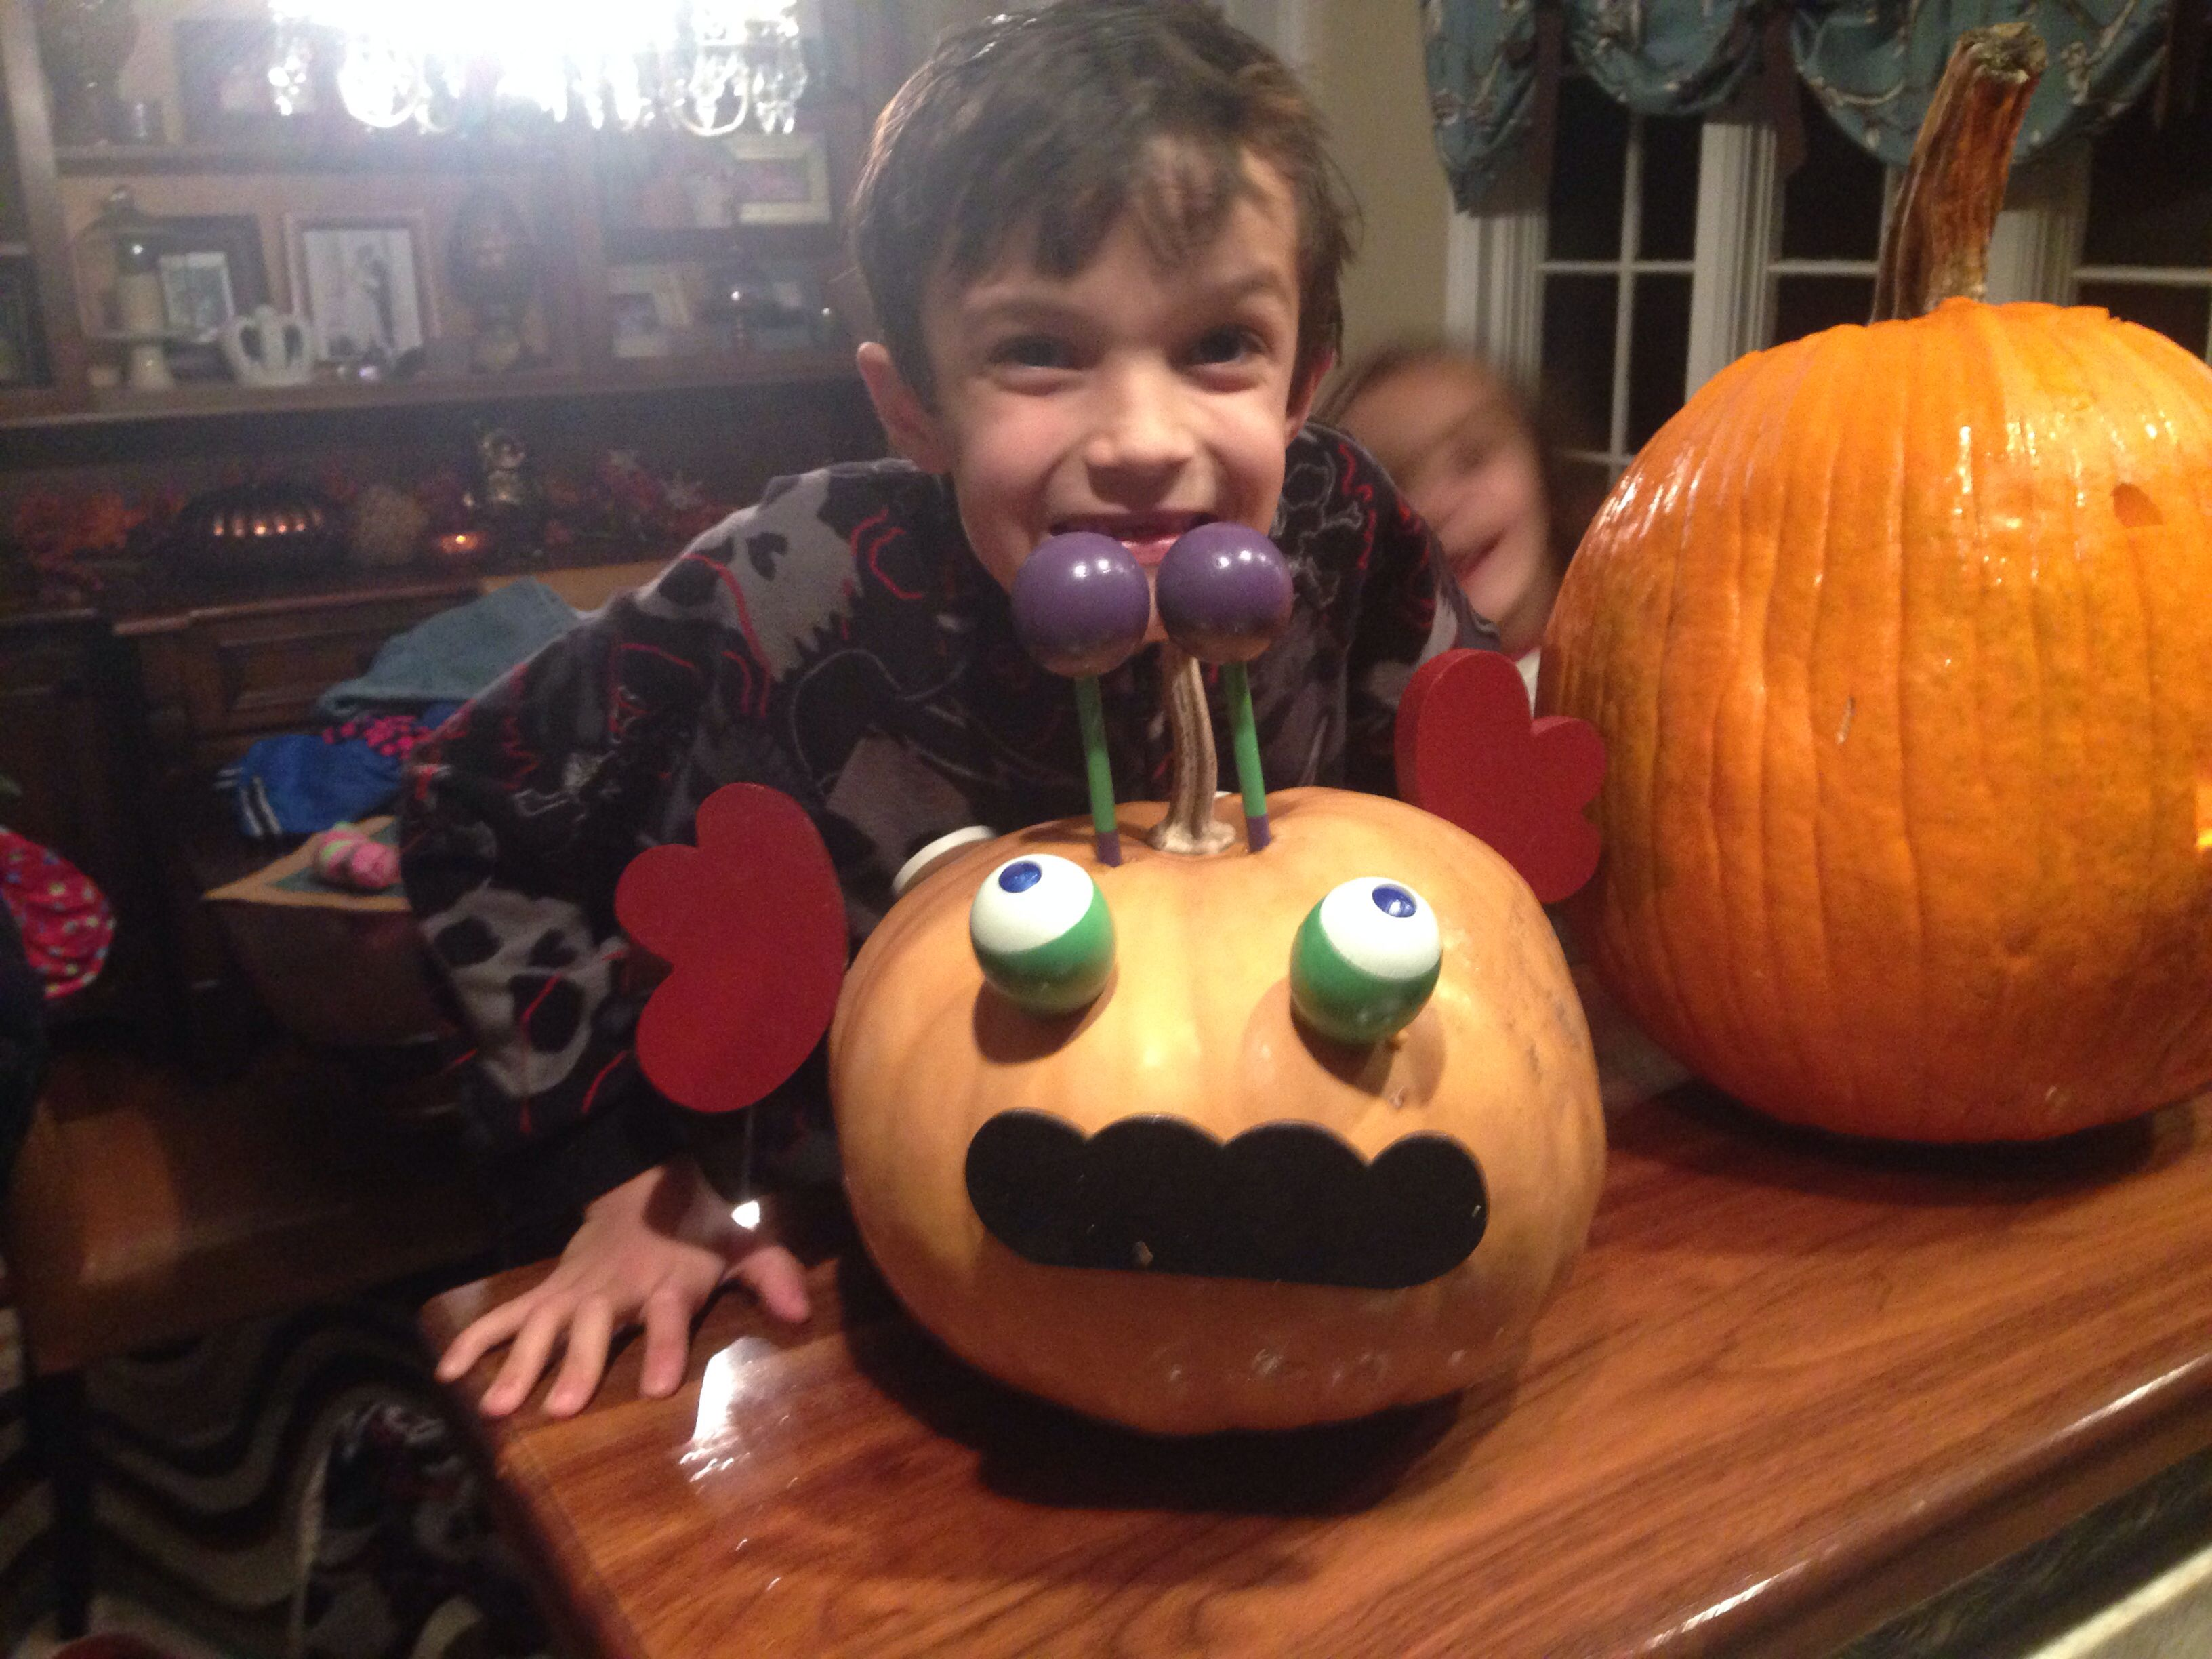 Gianni loves Halloween and pumpkins